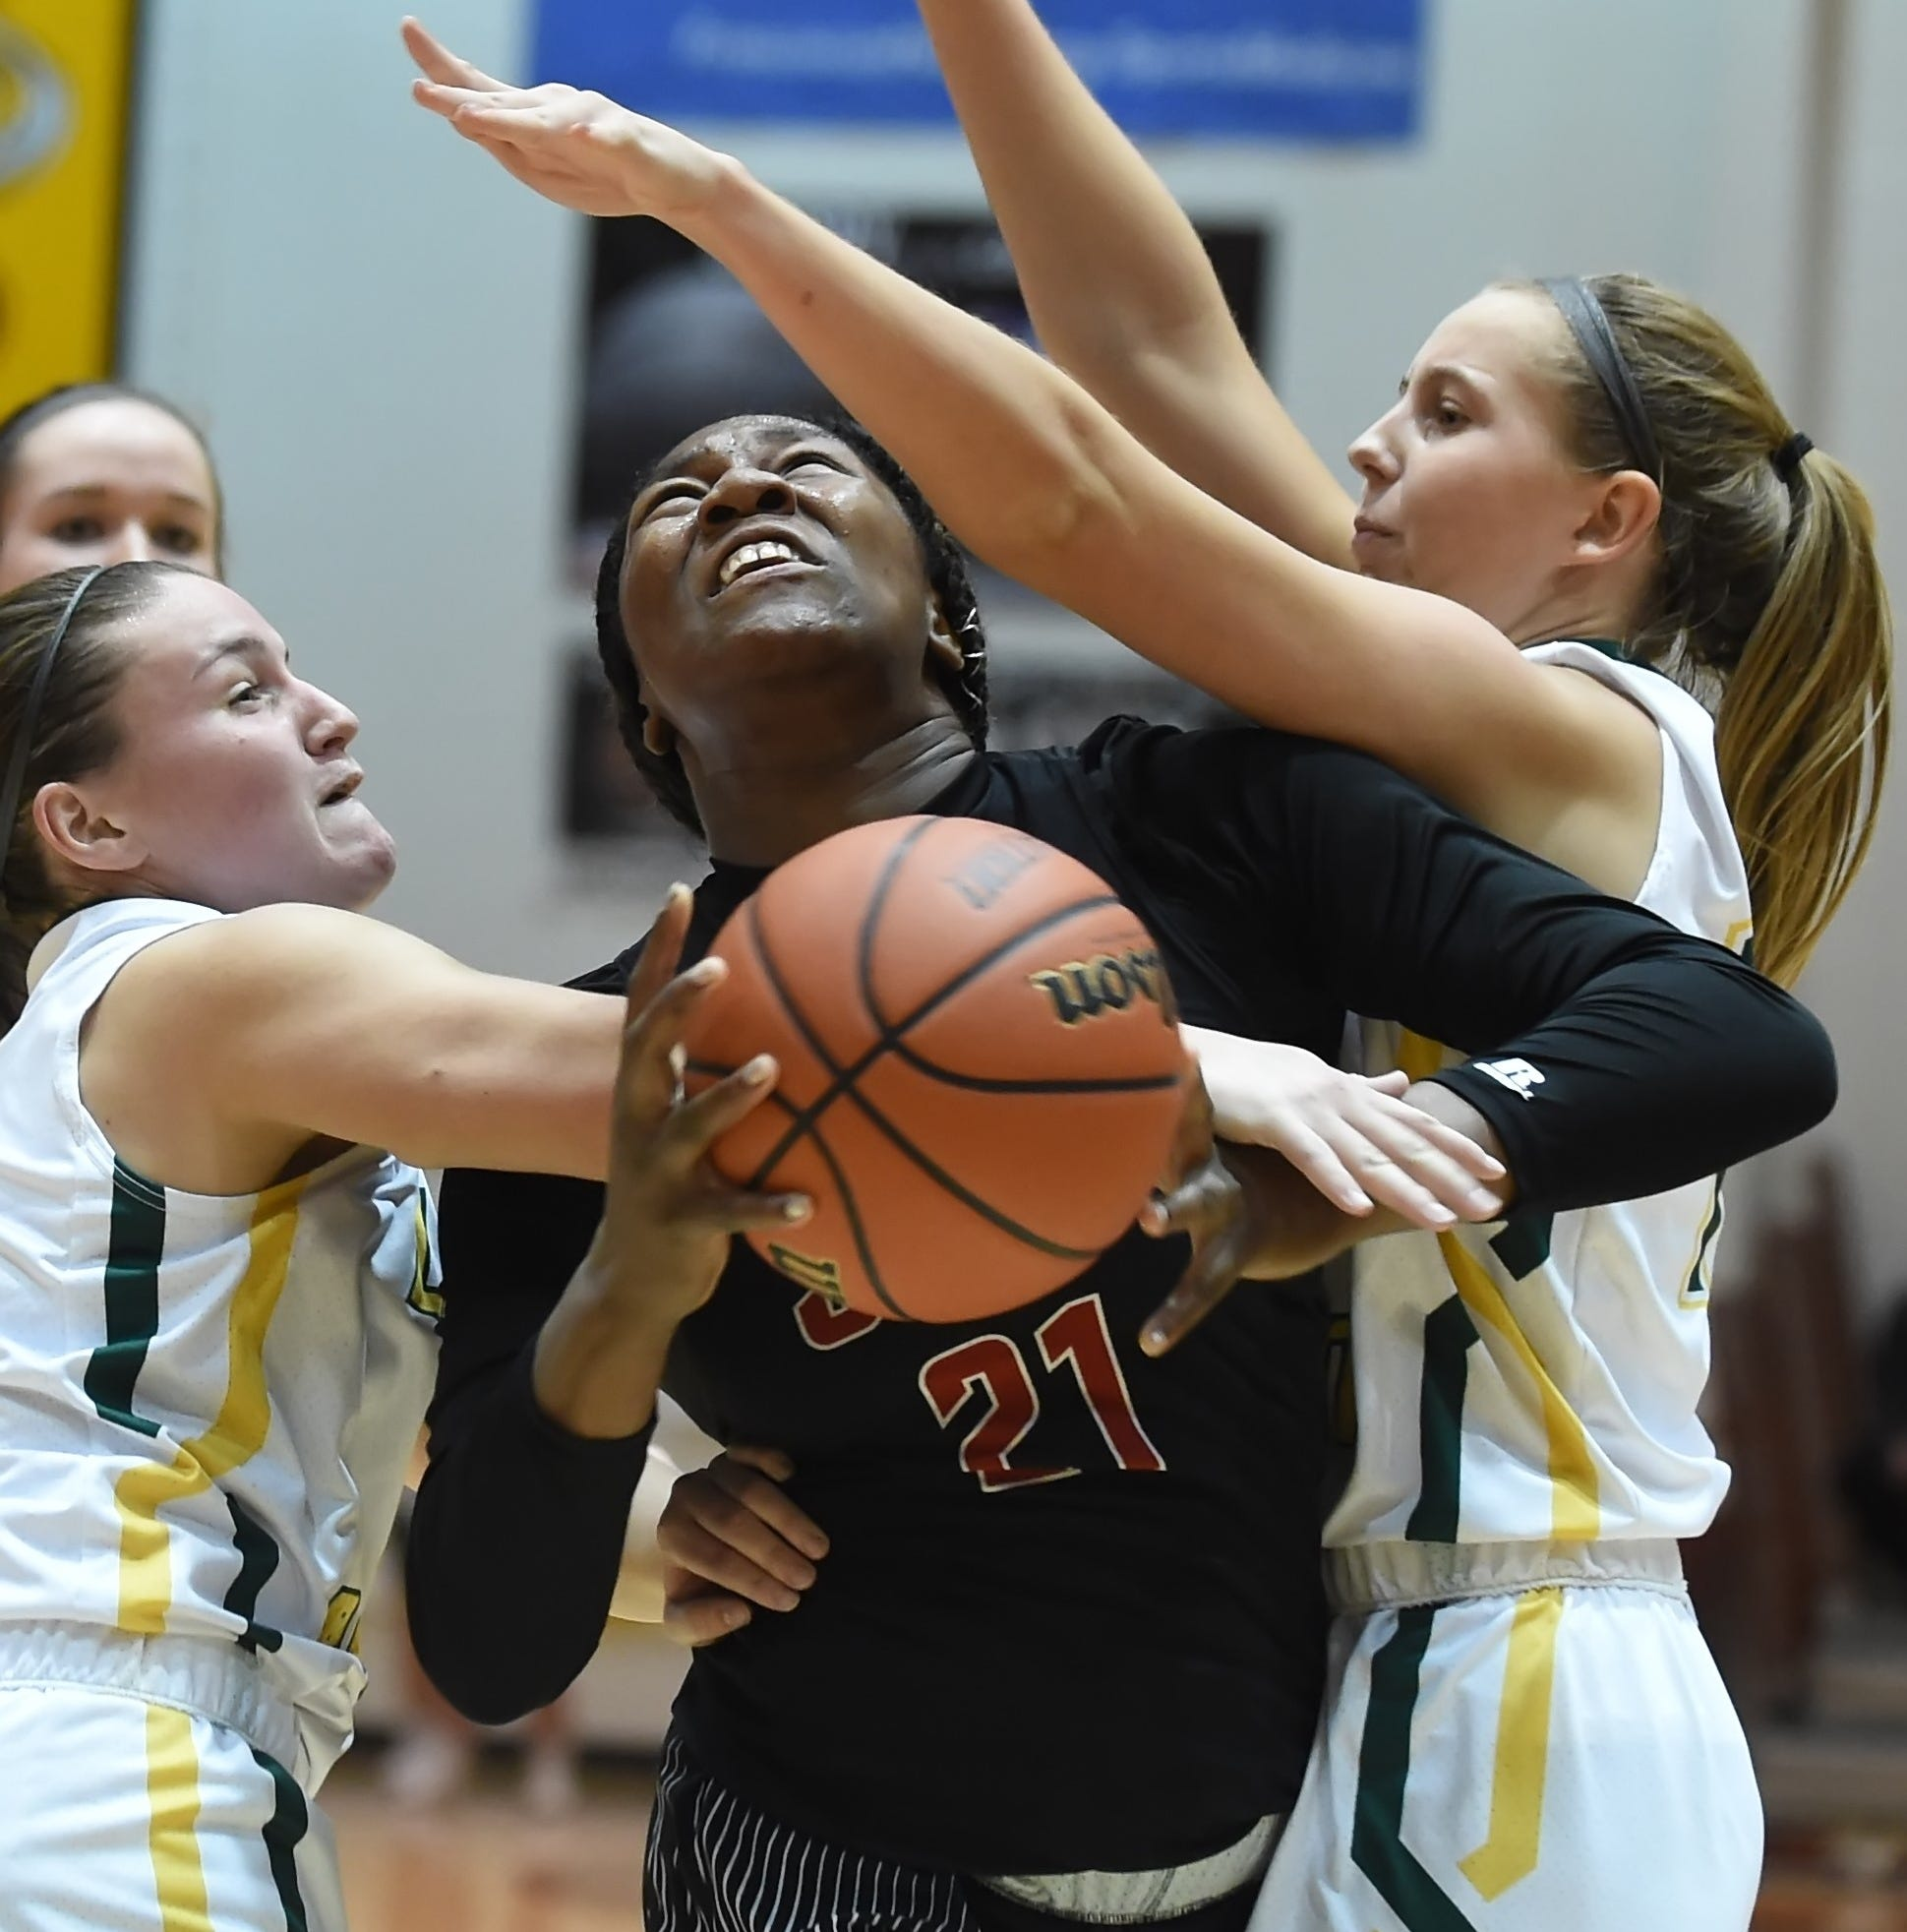 Lafayette Jeff junior forward Kiara Lewis drives through a pair of Benton Central defenders Friday night at the Franciscan Health Hoops Classic.